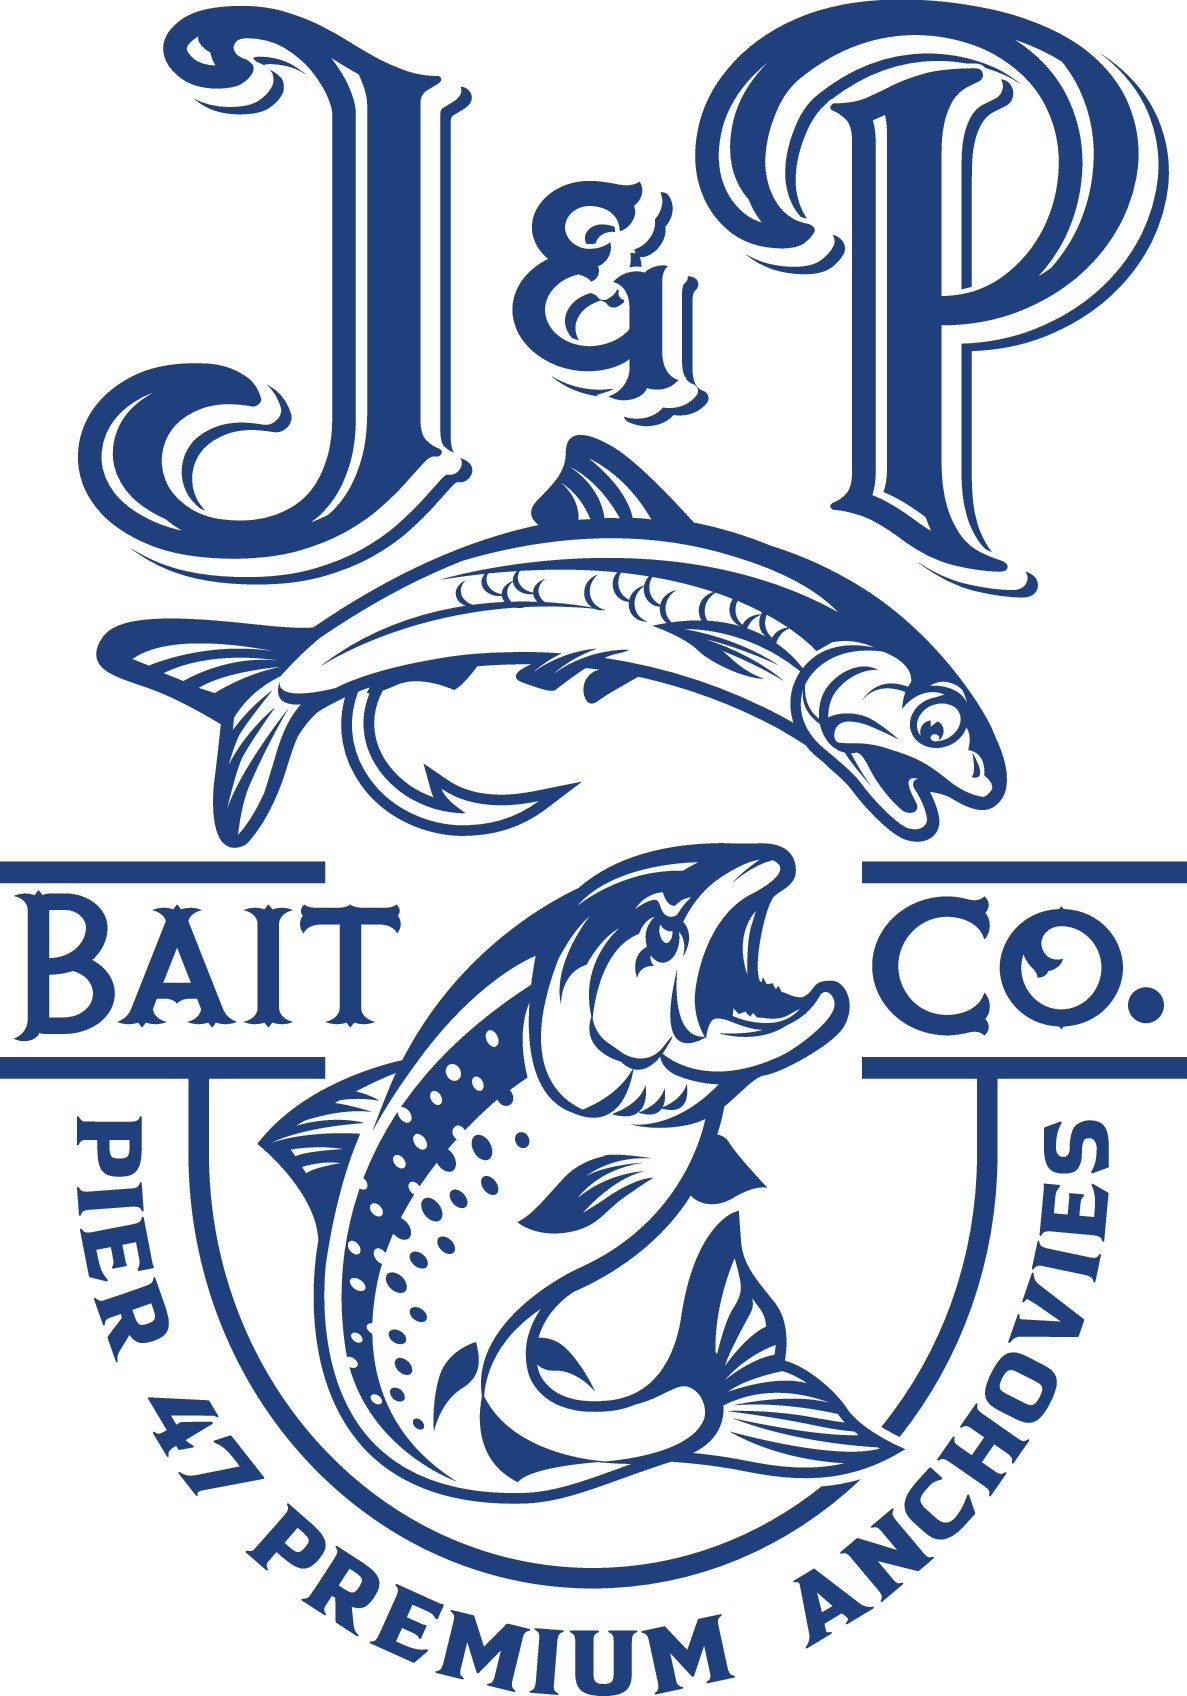 logo needed for fishing bait company based in San Francisco